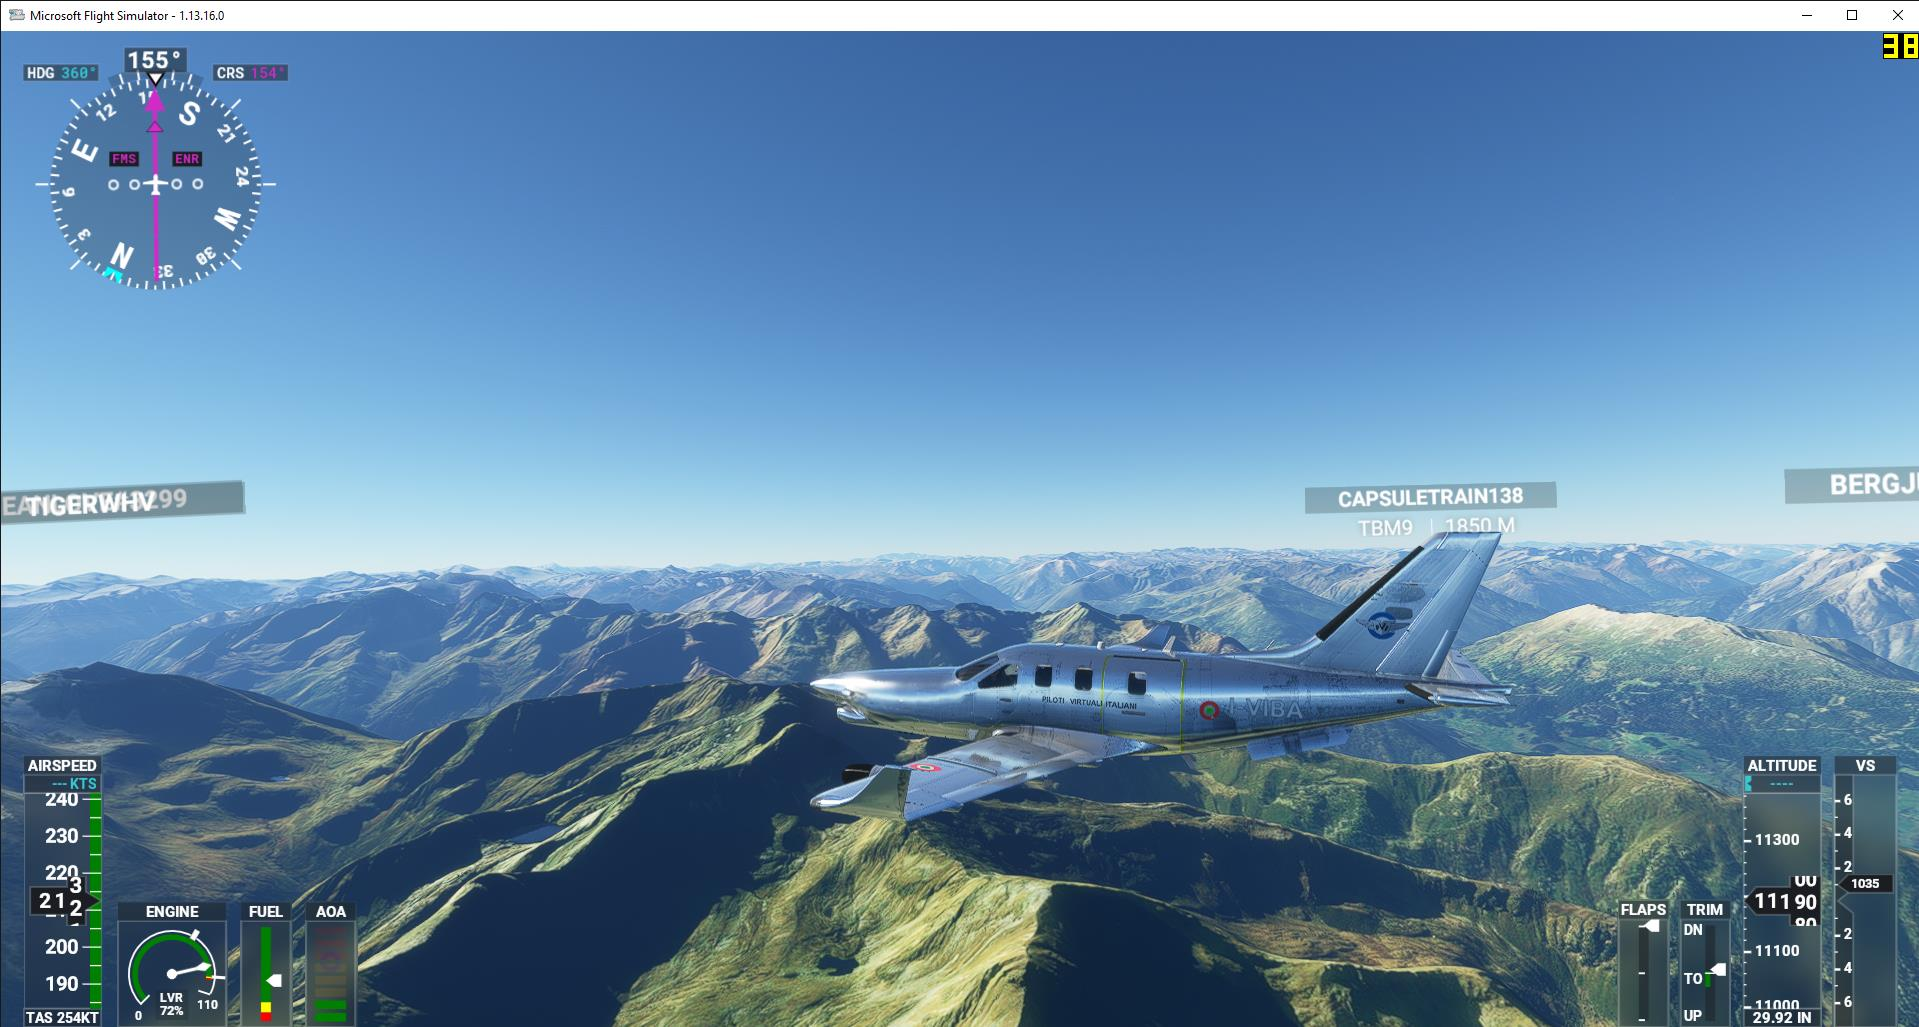 https://vivendobyte.blob.core.windows.net/58401/Microsoft Flight Simulator 23_02_2021 13_02_46.jpg